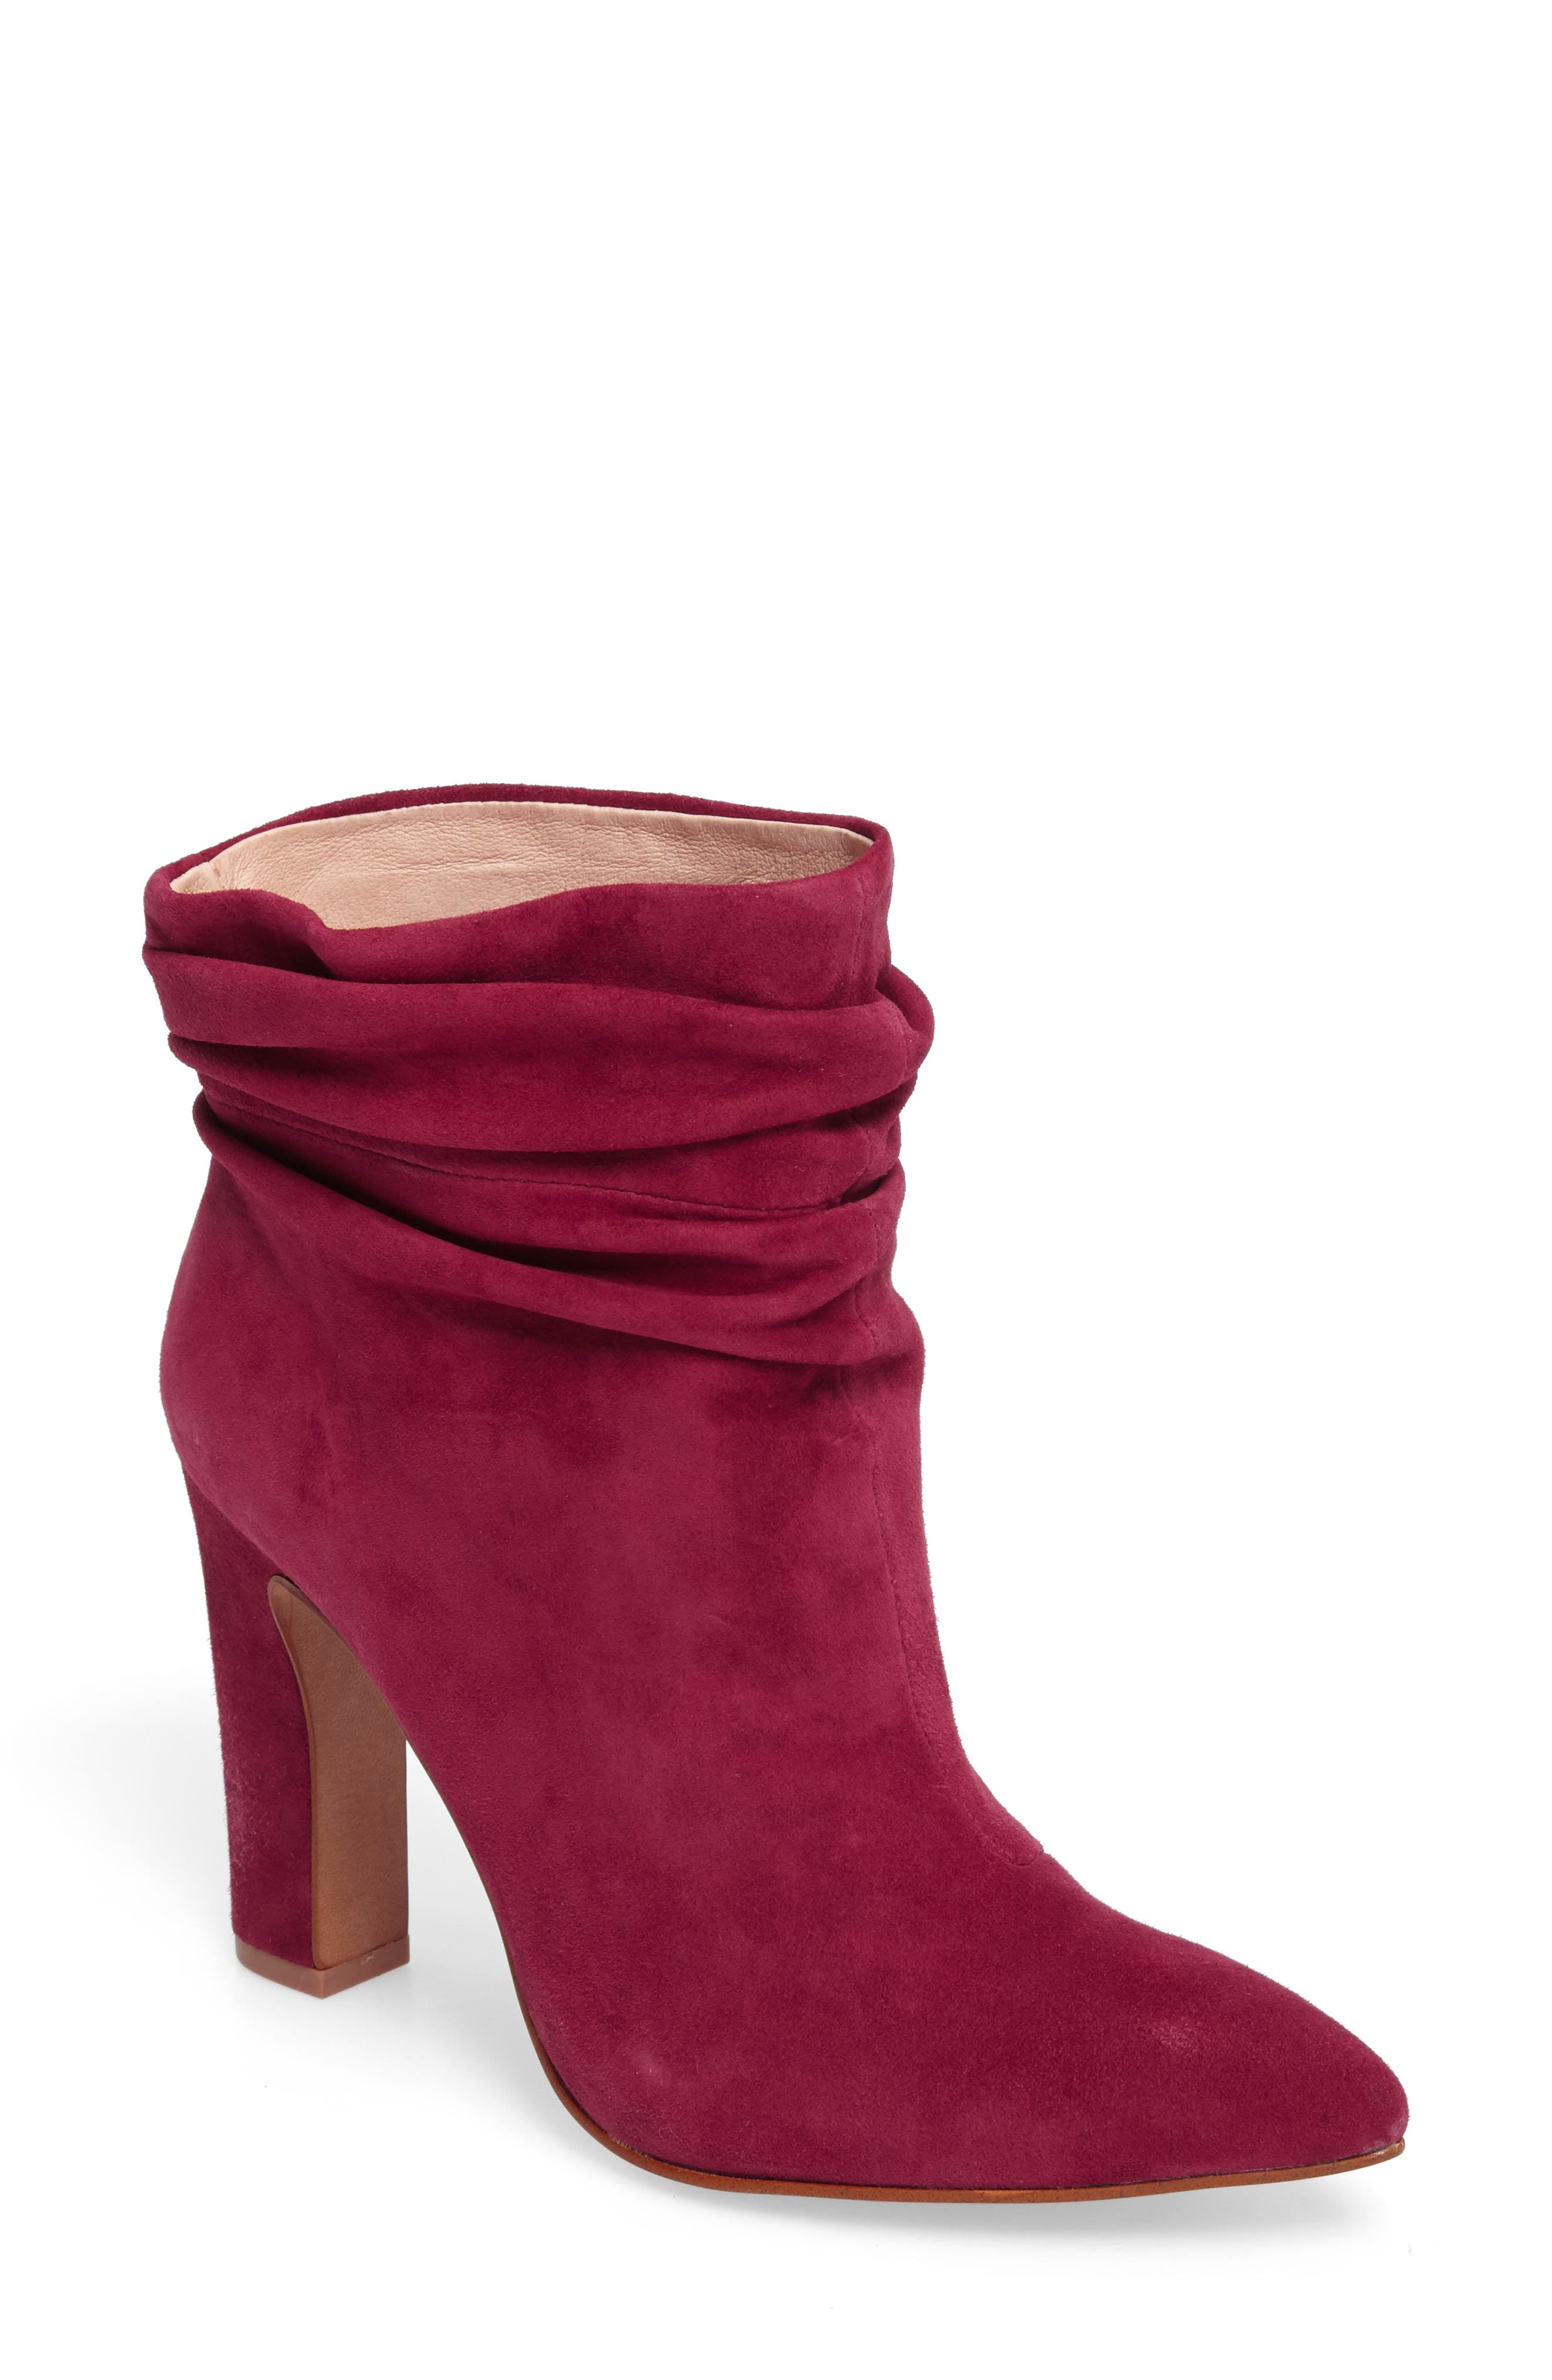 Kane Bootie,                             Main thumbnail 1, color,                             RED SUEDE